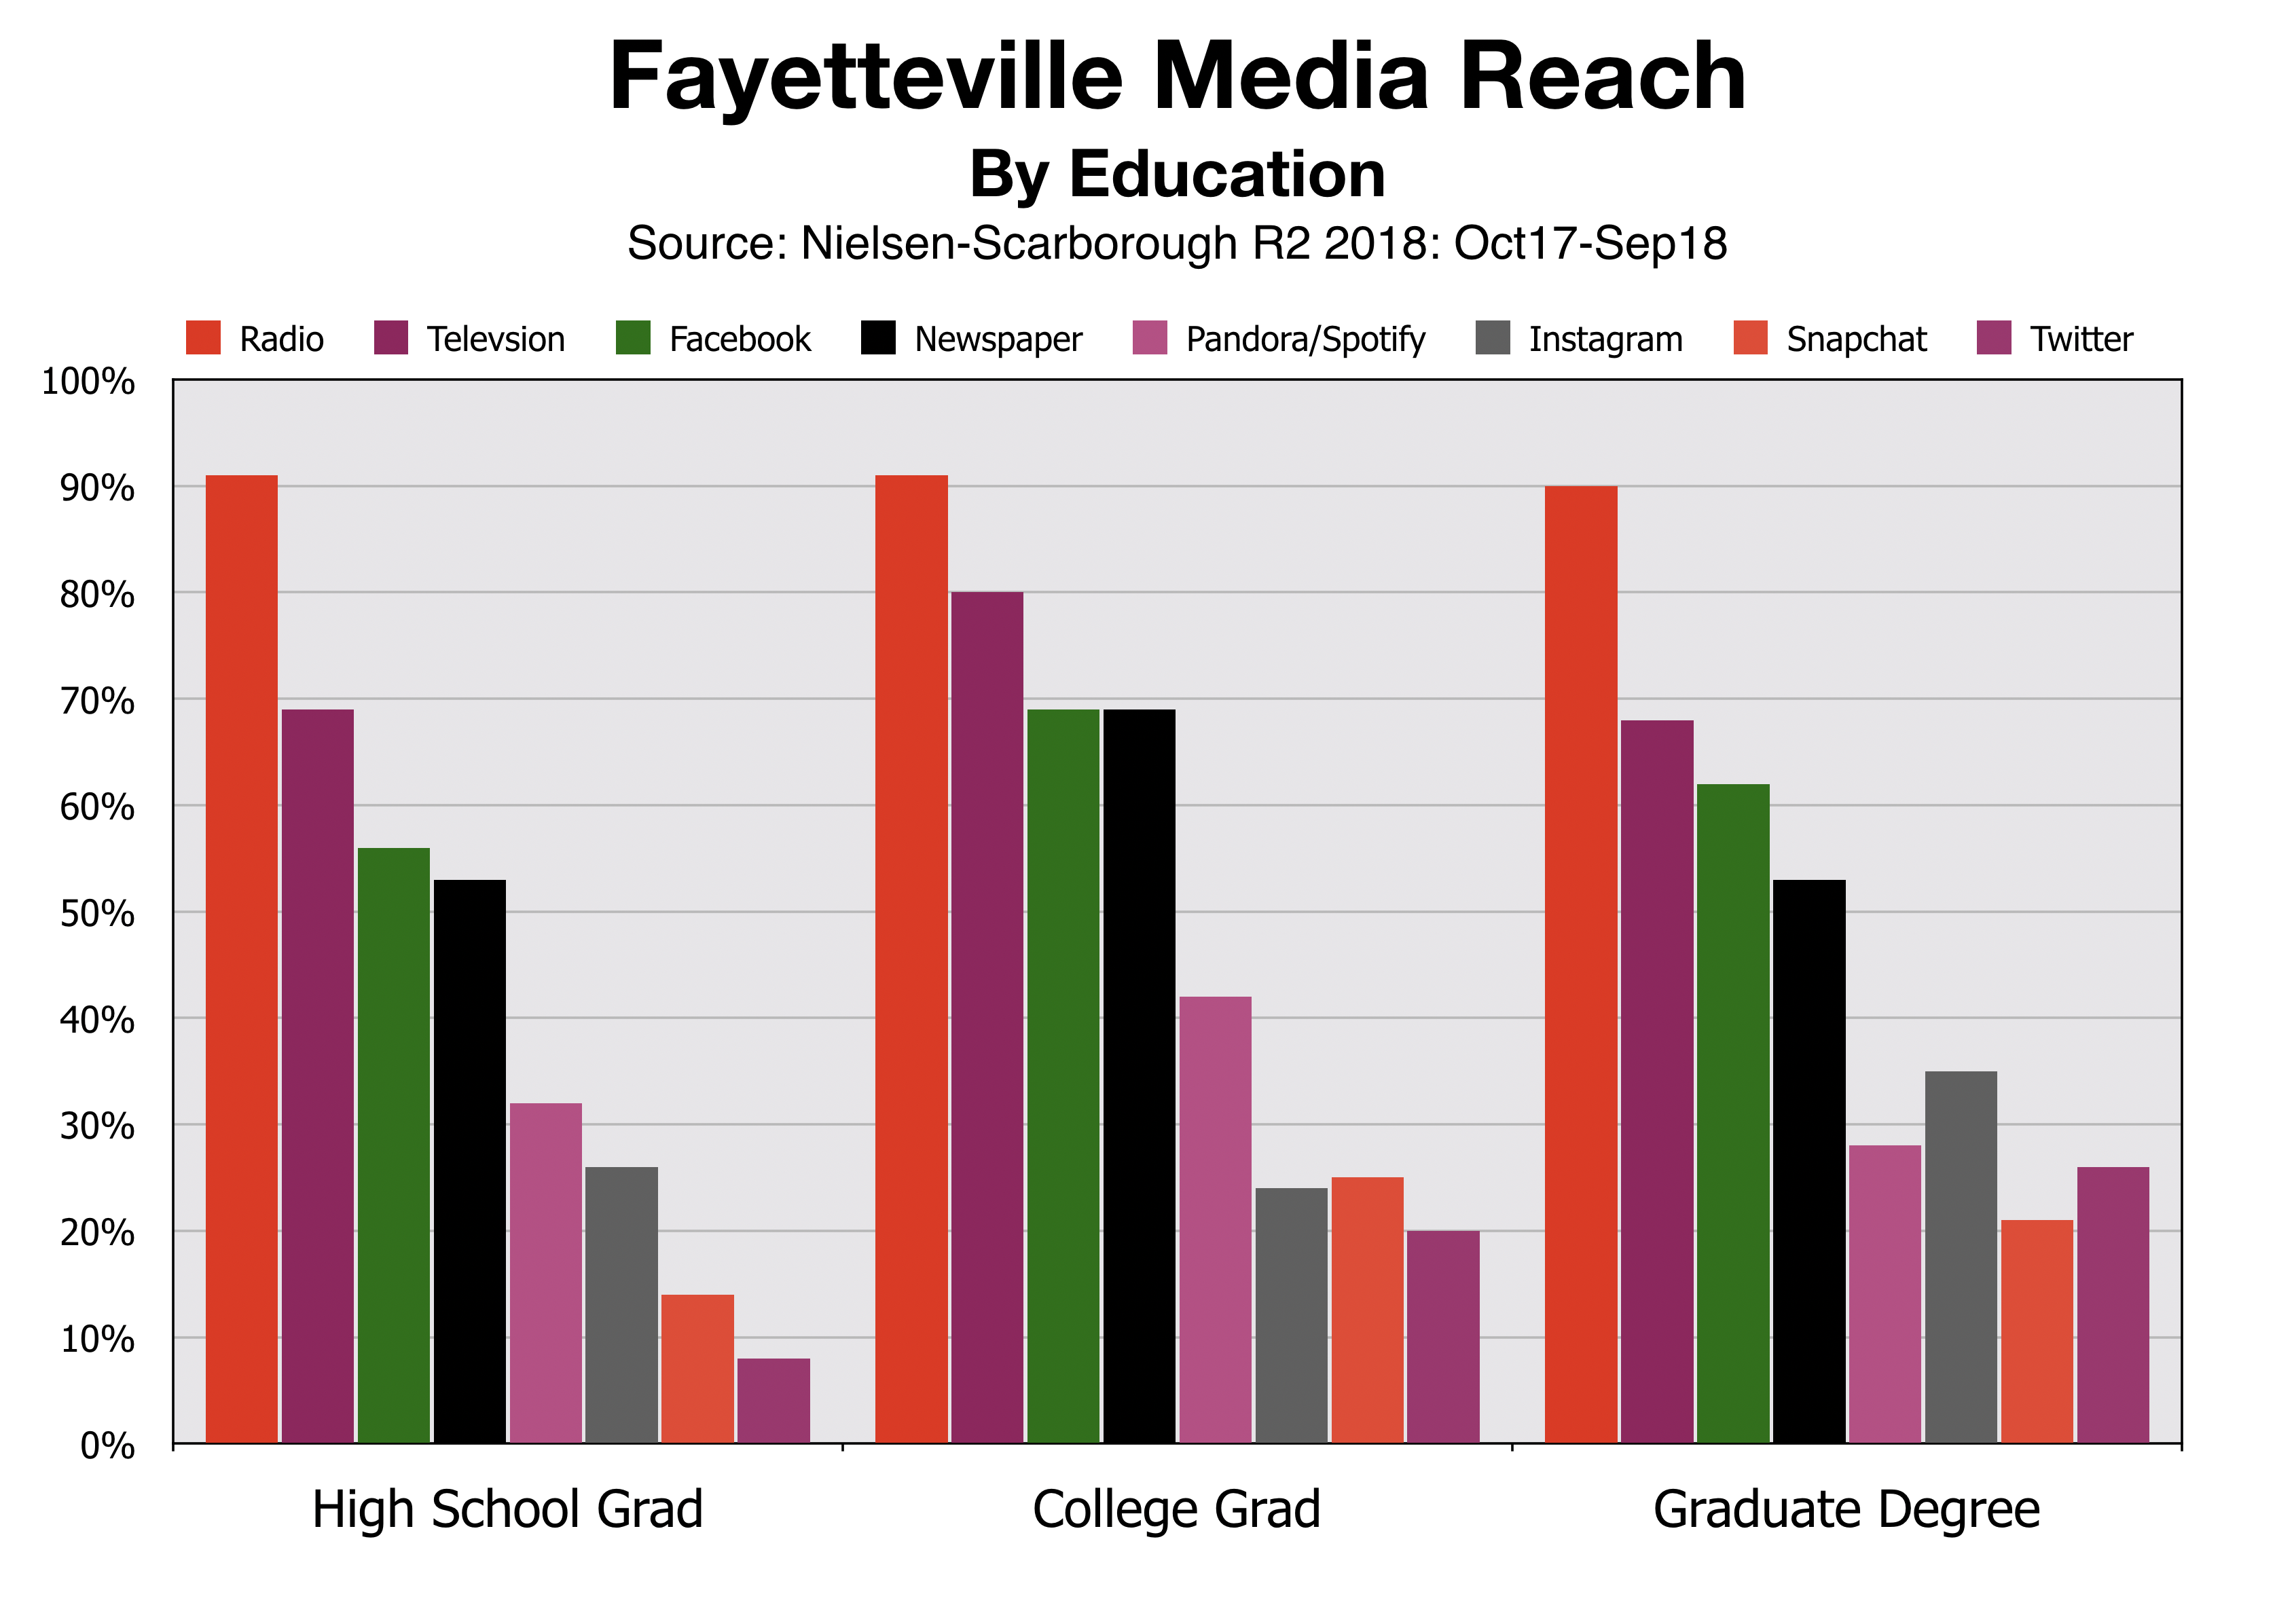 Advertise In Fayetteville By Education Levl